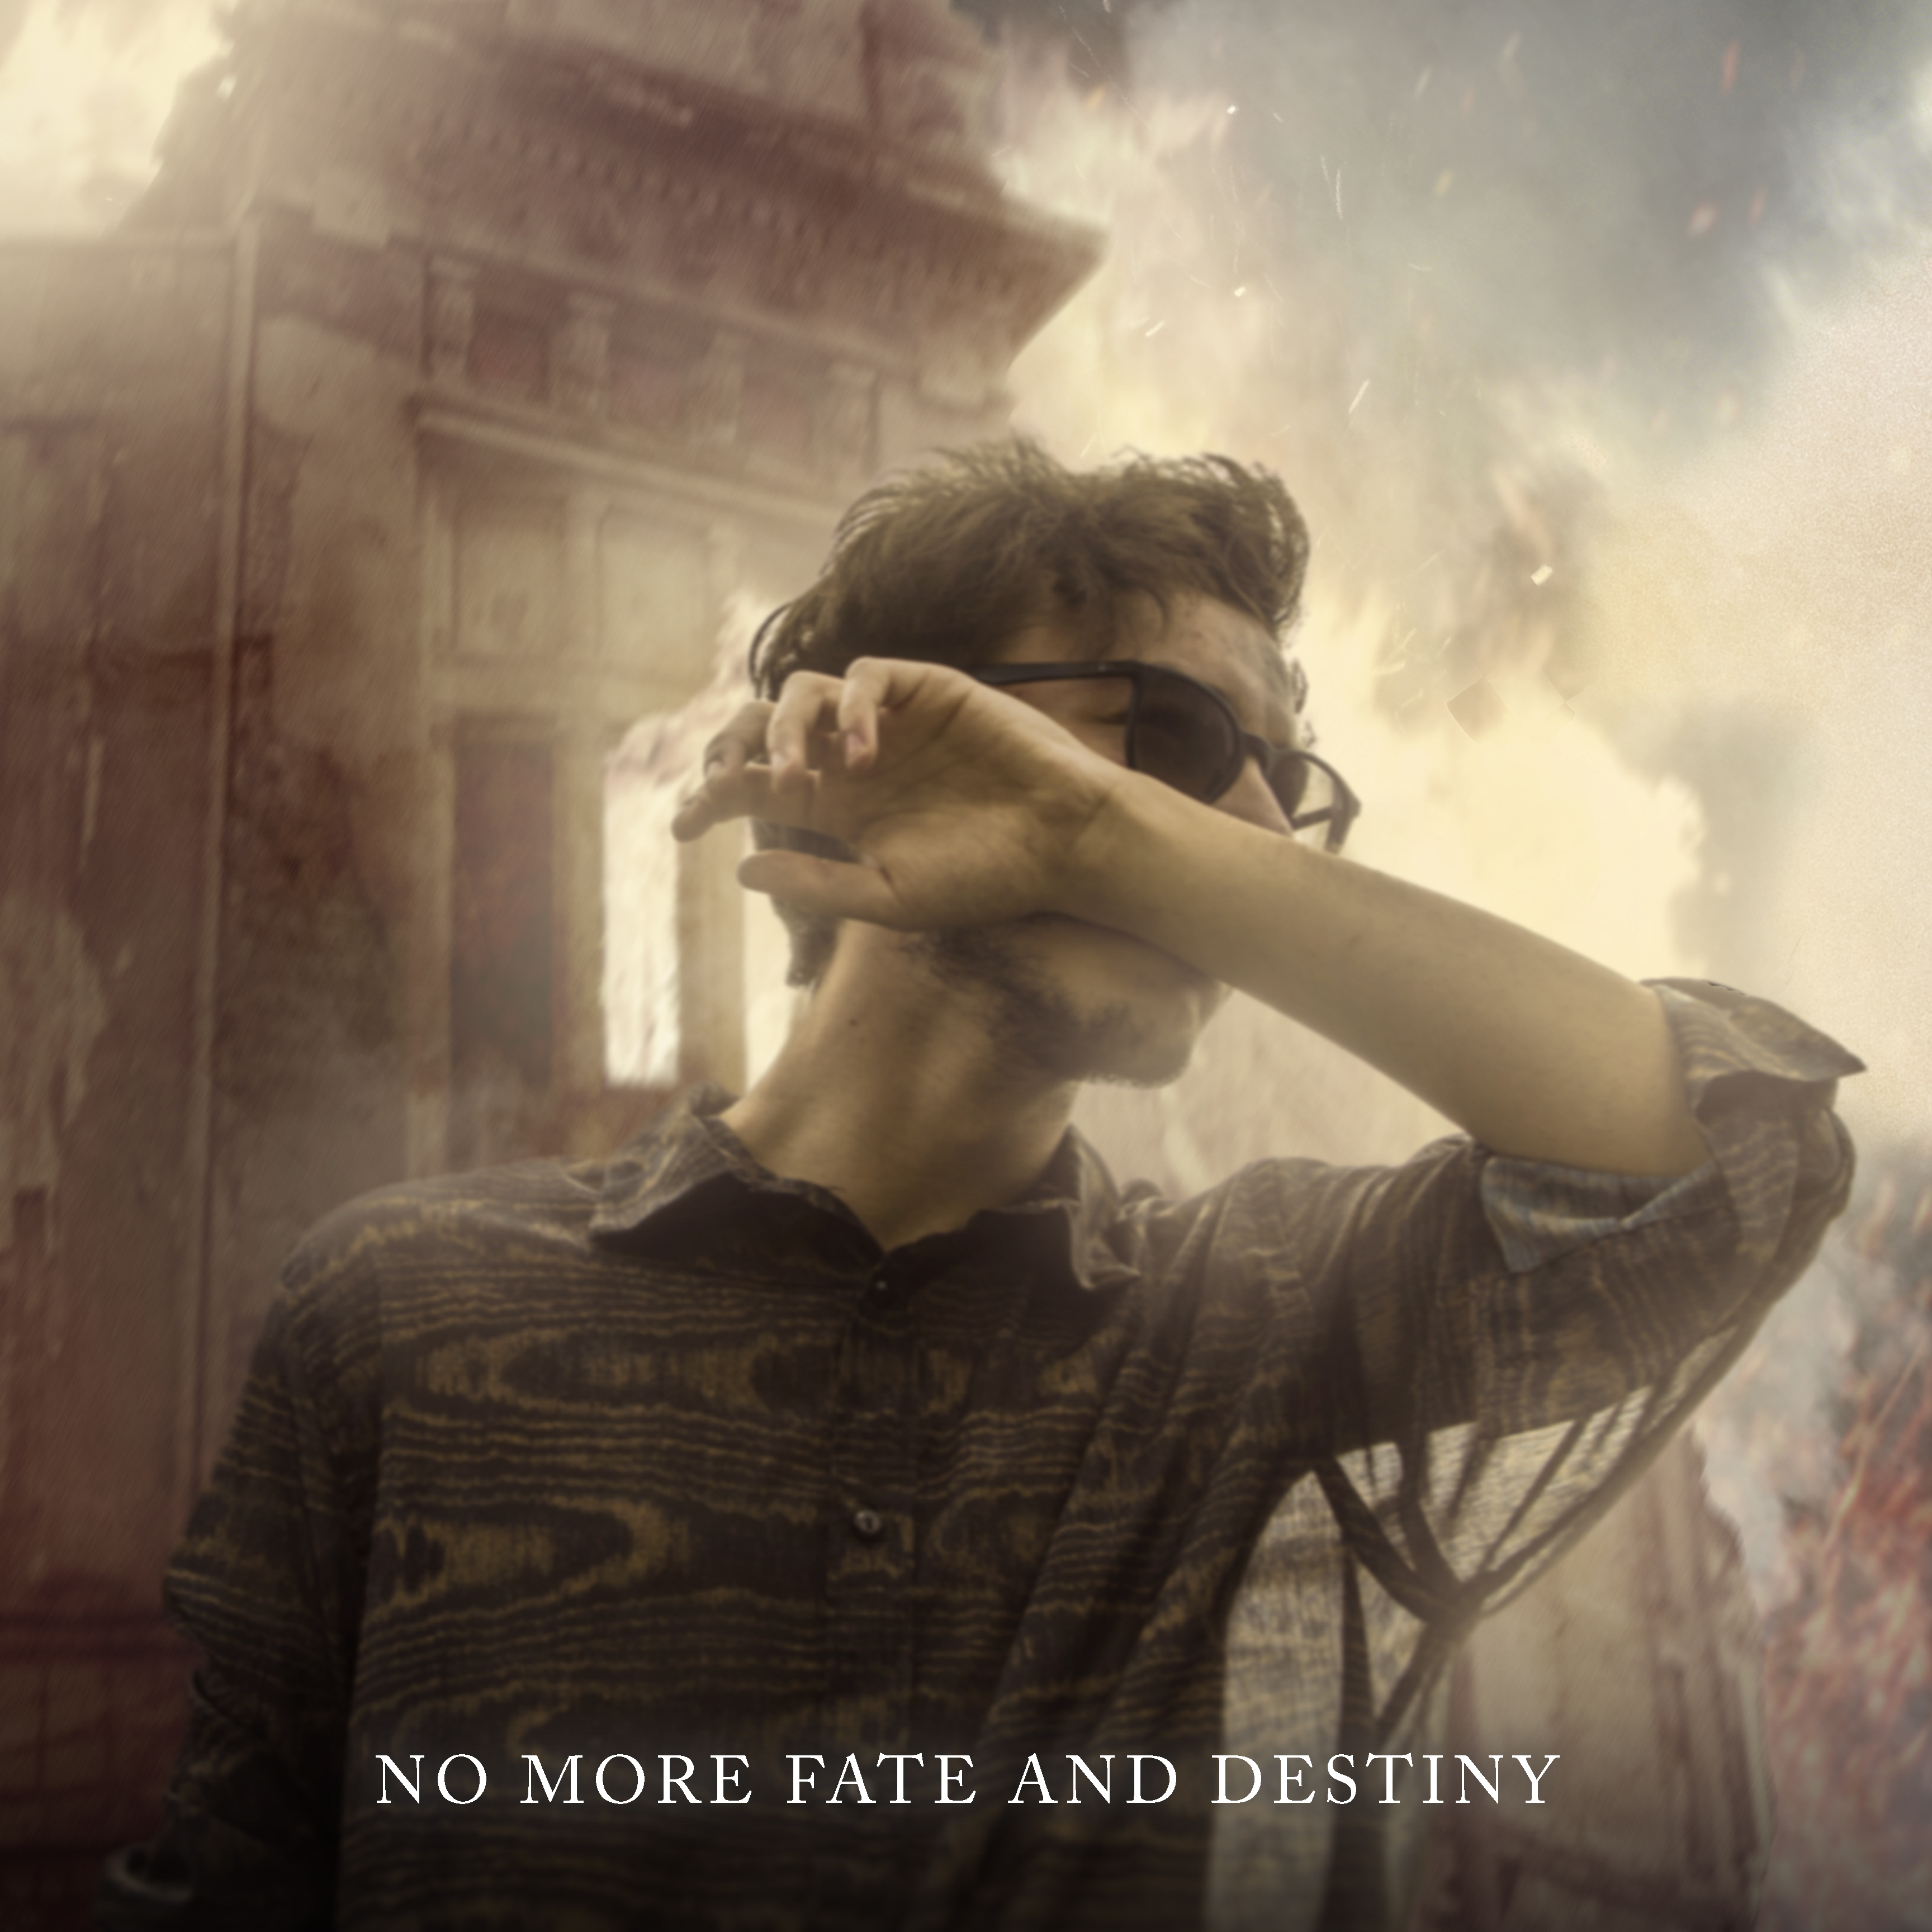 No More Fate and Destiny Image